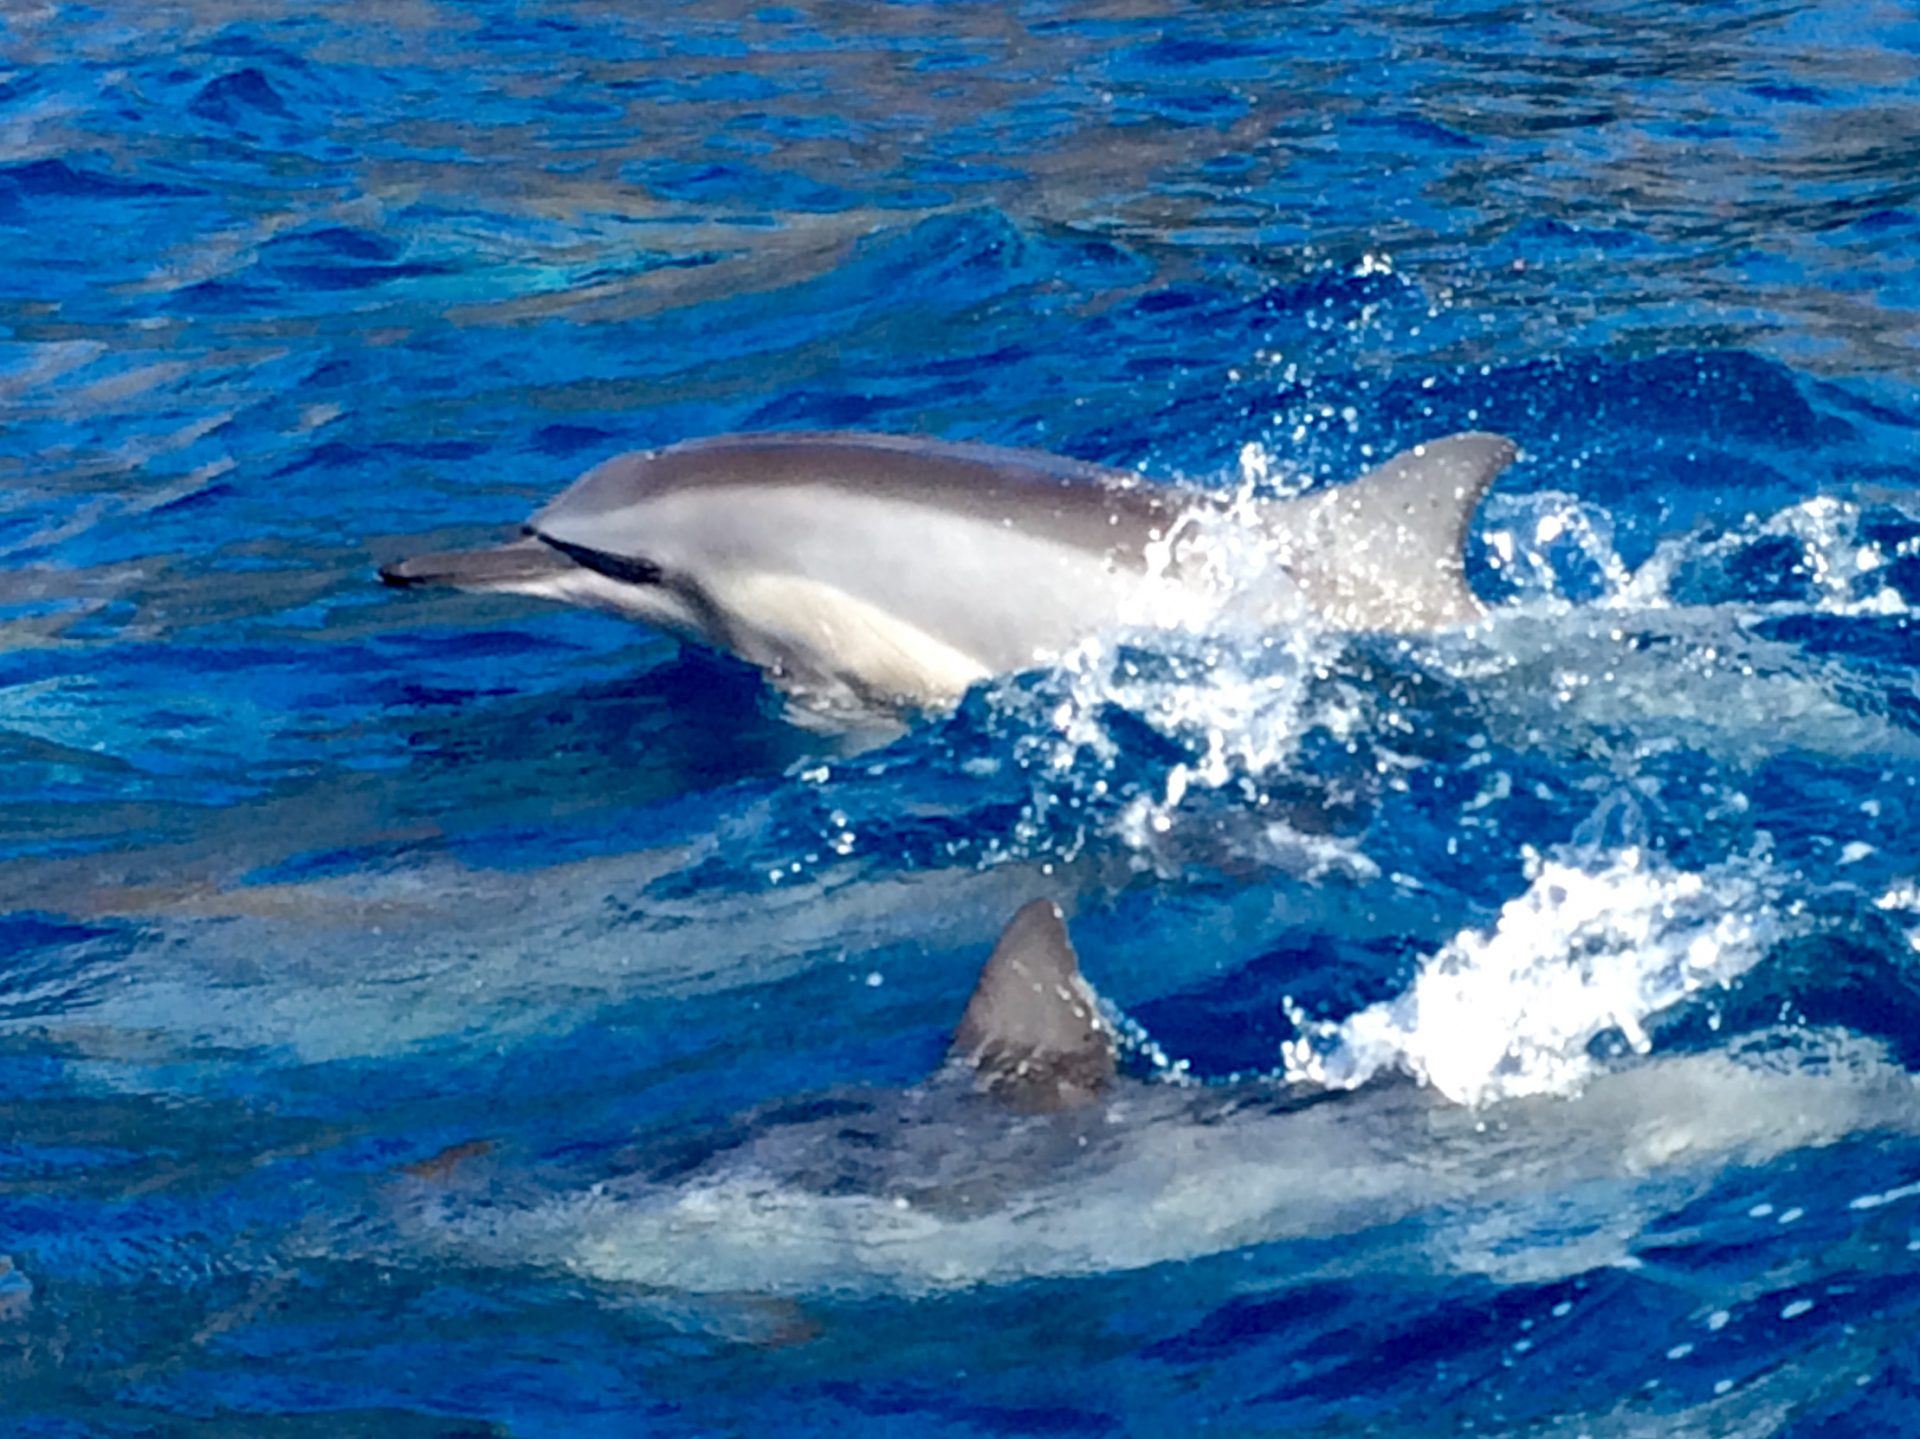 We offer half day Lanai snorkeling tours and seasonal whale watching as well as a full day tour and private charters.